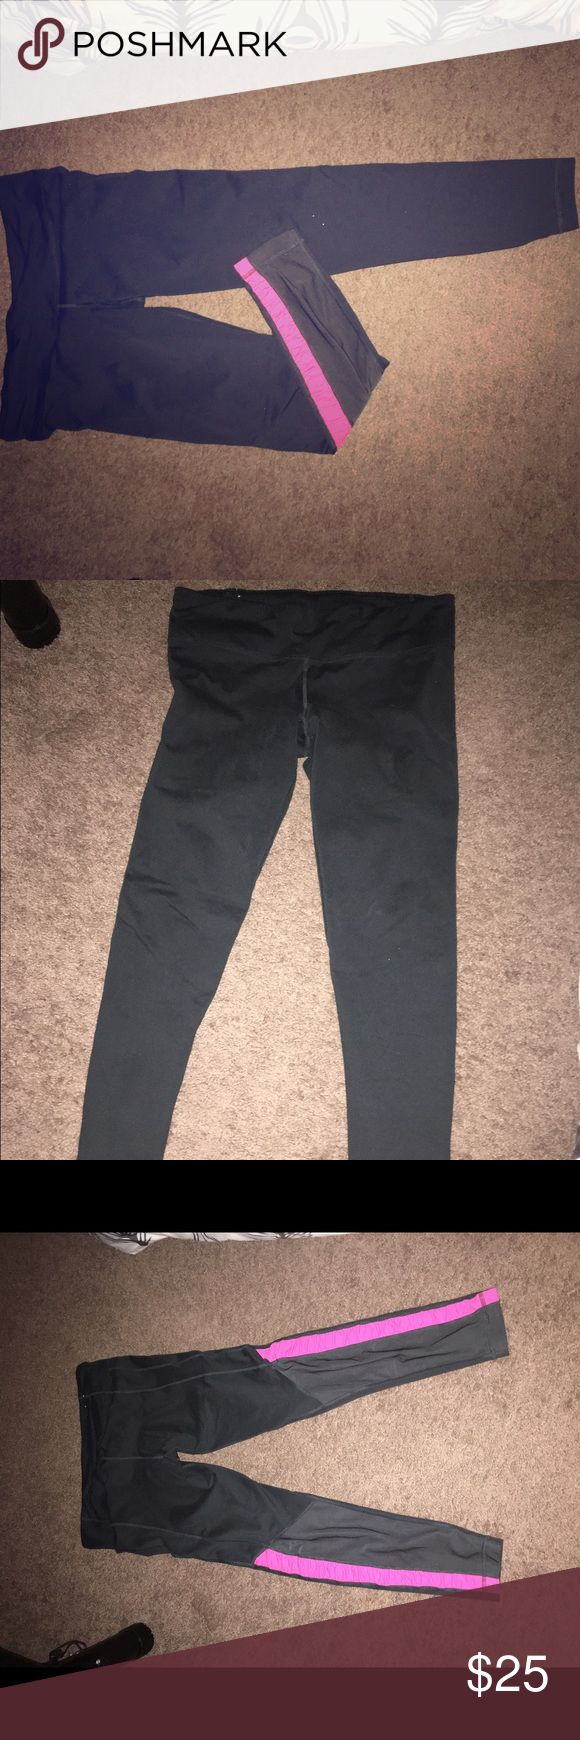 under armour mesh vented workout legging These are super comfy dark grey and pink with mesh panels on the back by the calves. Great for all activities Under Armour Pants Leggings